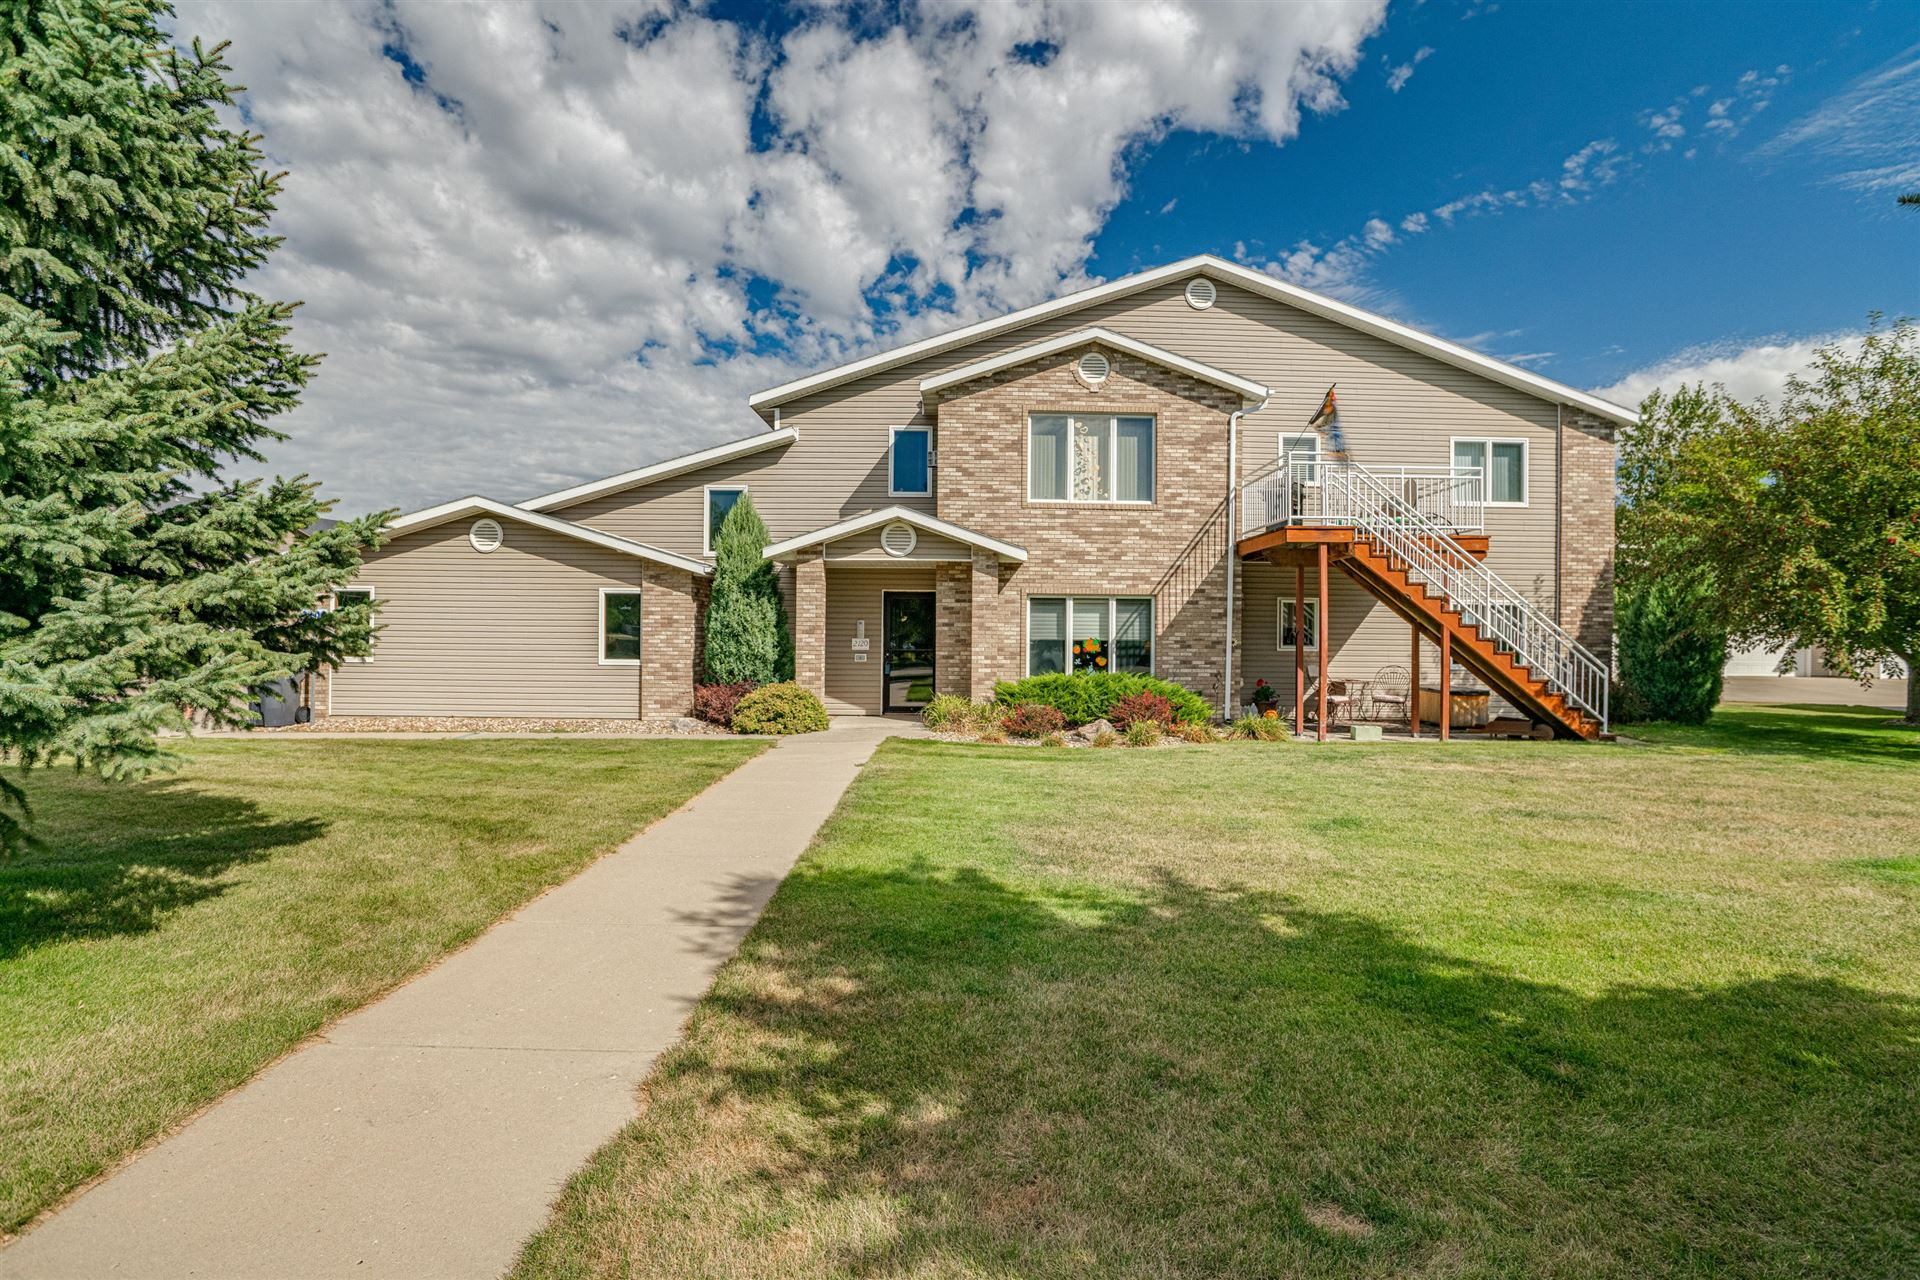 2120 Sundancer Loop SE #5, Mandan, ND 58554 - #: 408293